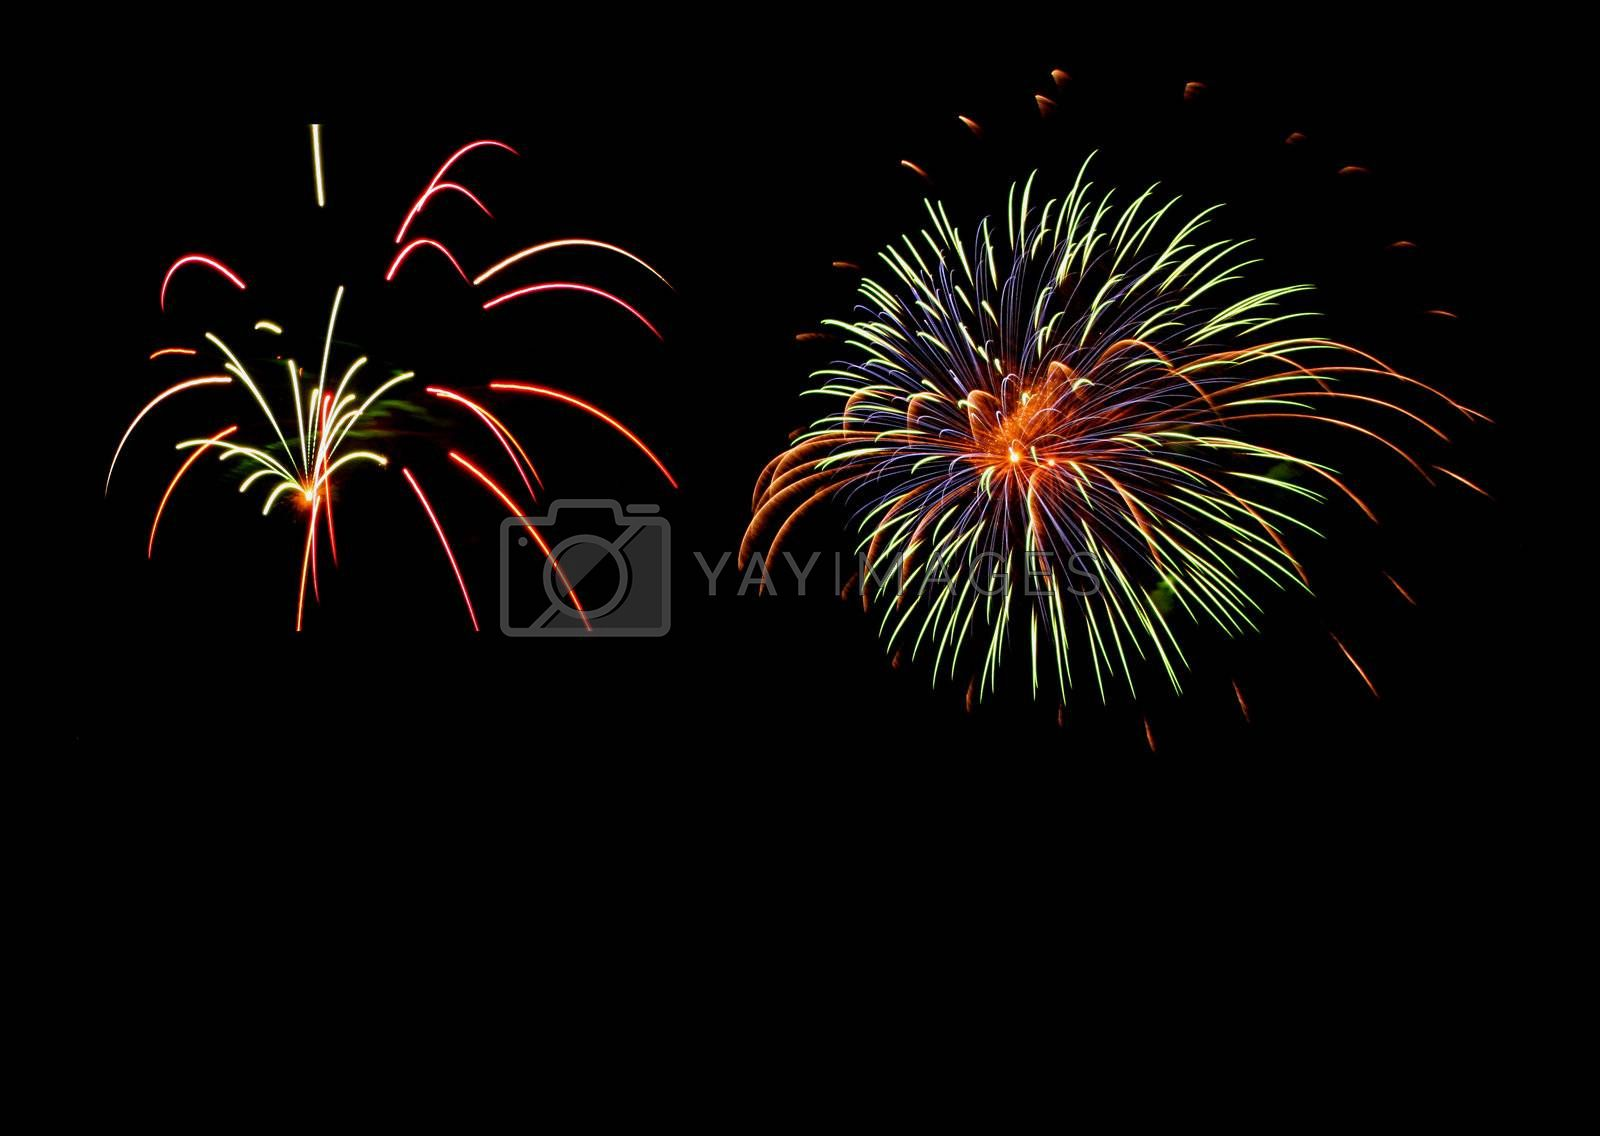 Fireworks against a black sky with copy space.